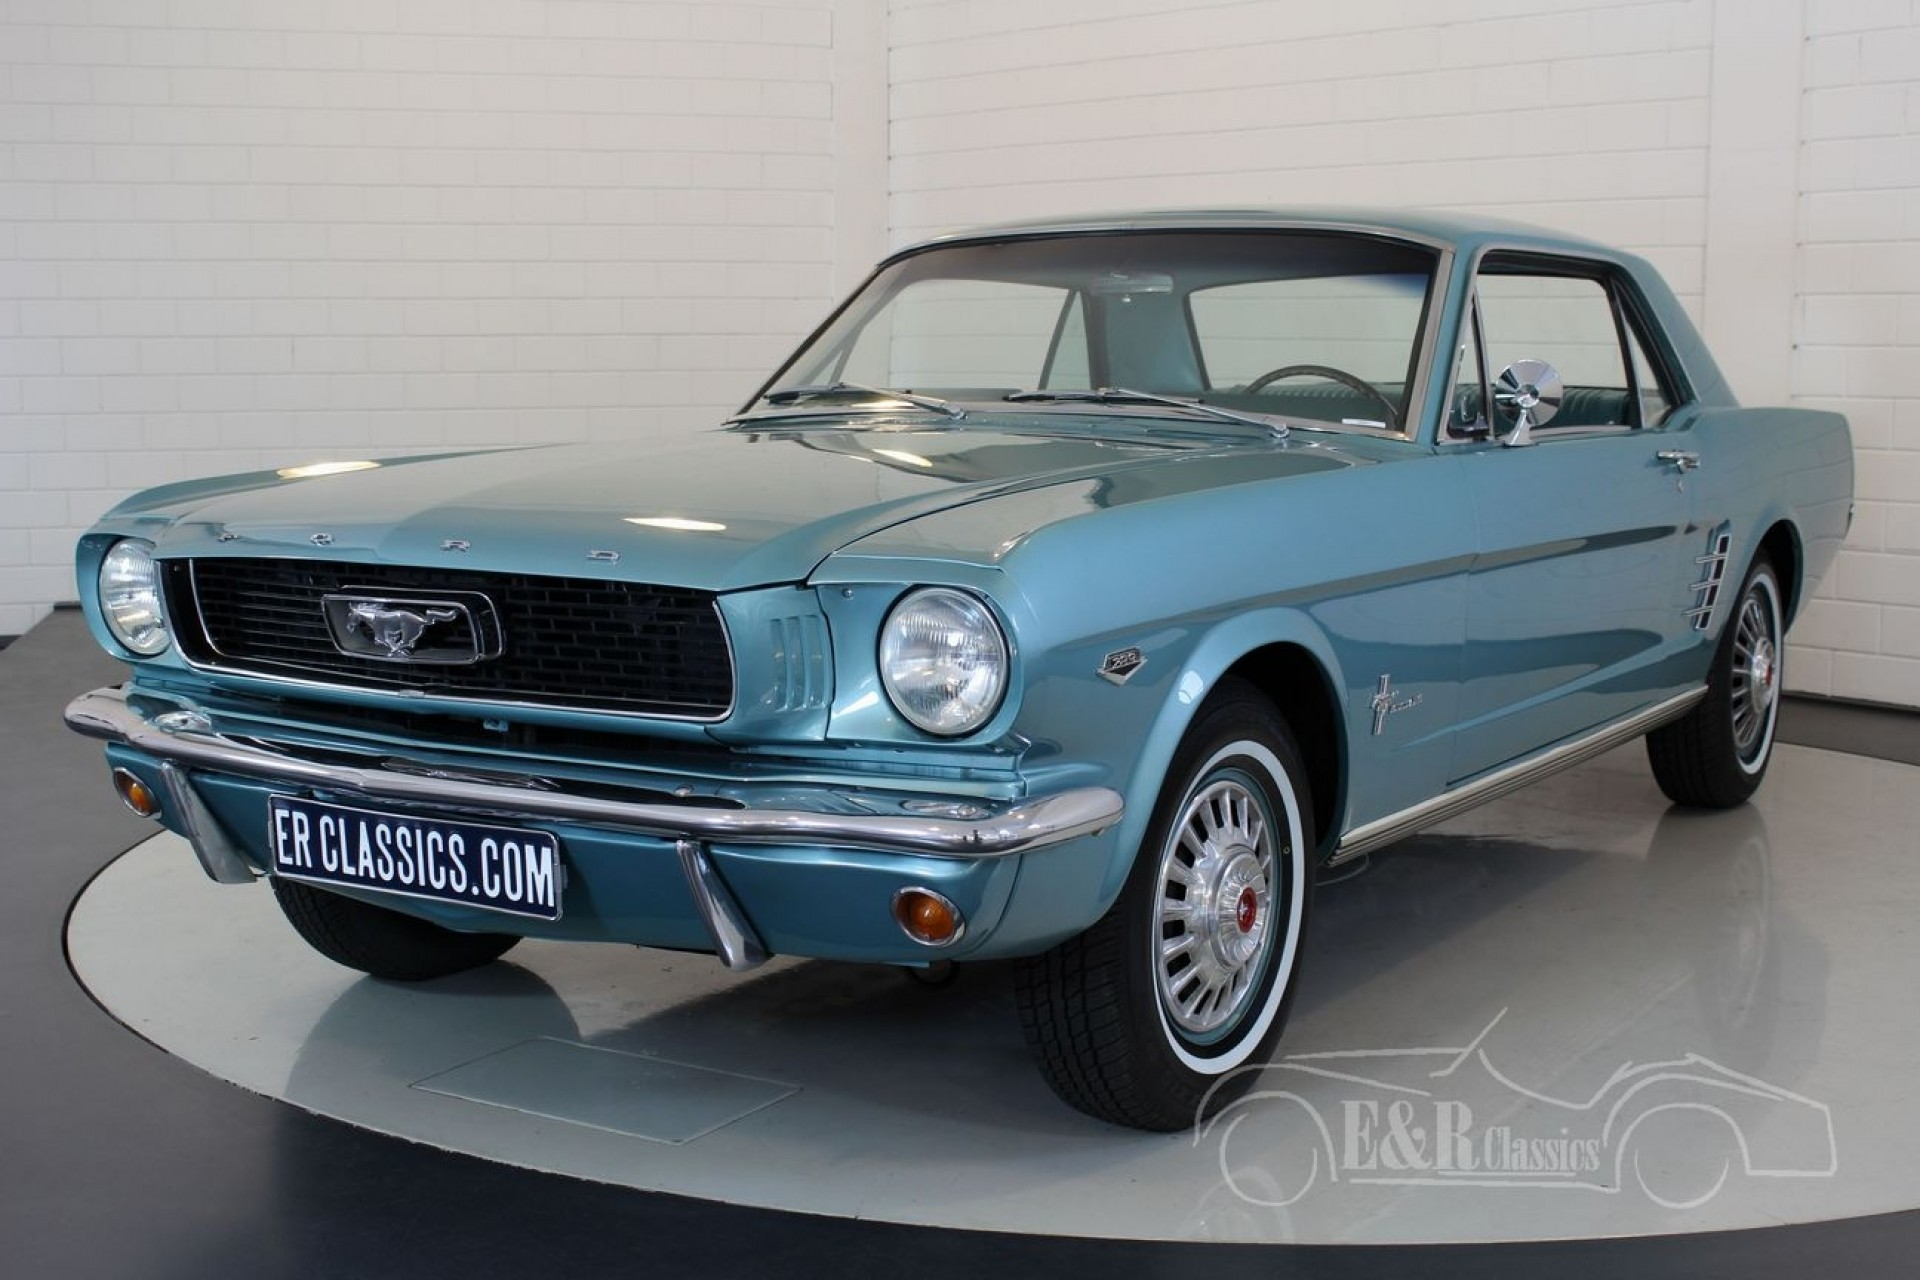 ford mustang coupe c code v8 1966 vendre erclassics. Black Bedroom Furniture Sets. Home Design Ideas